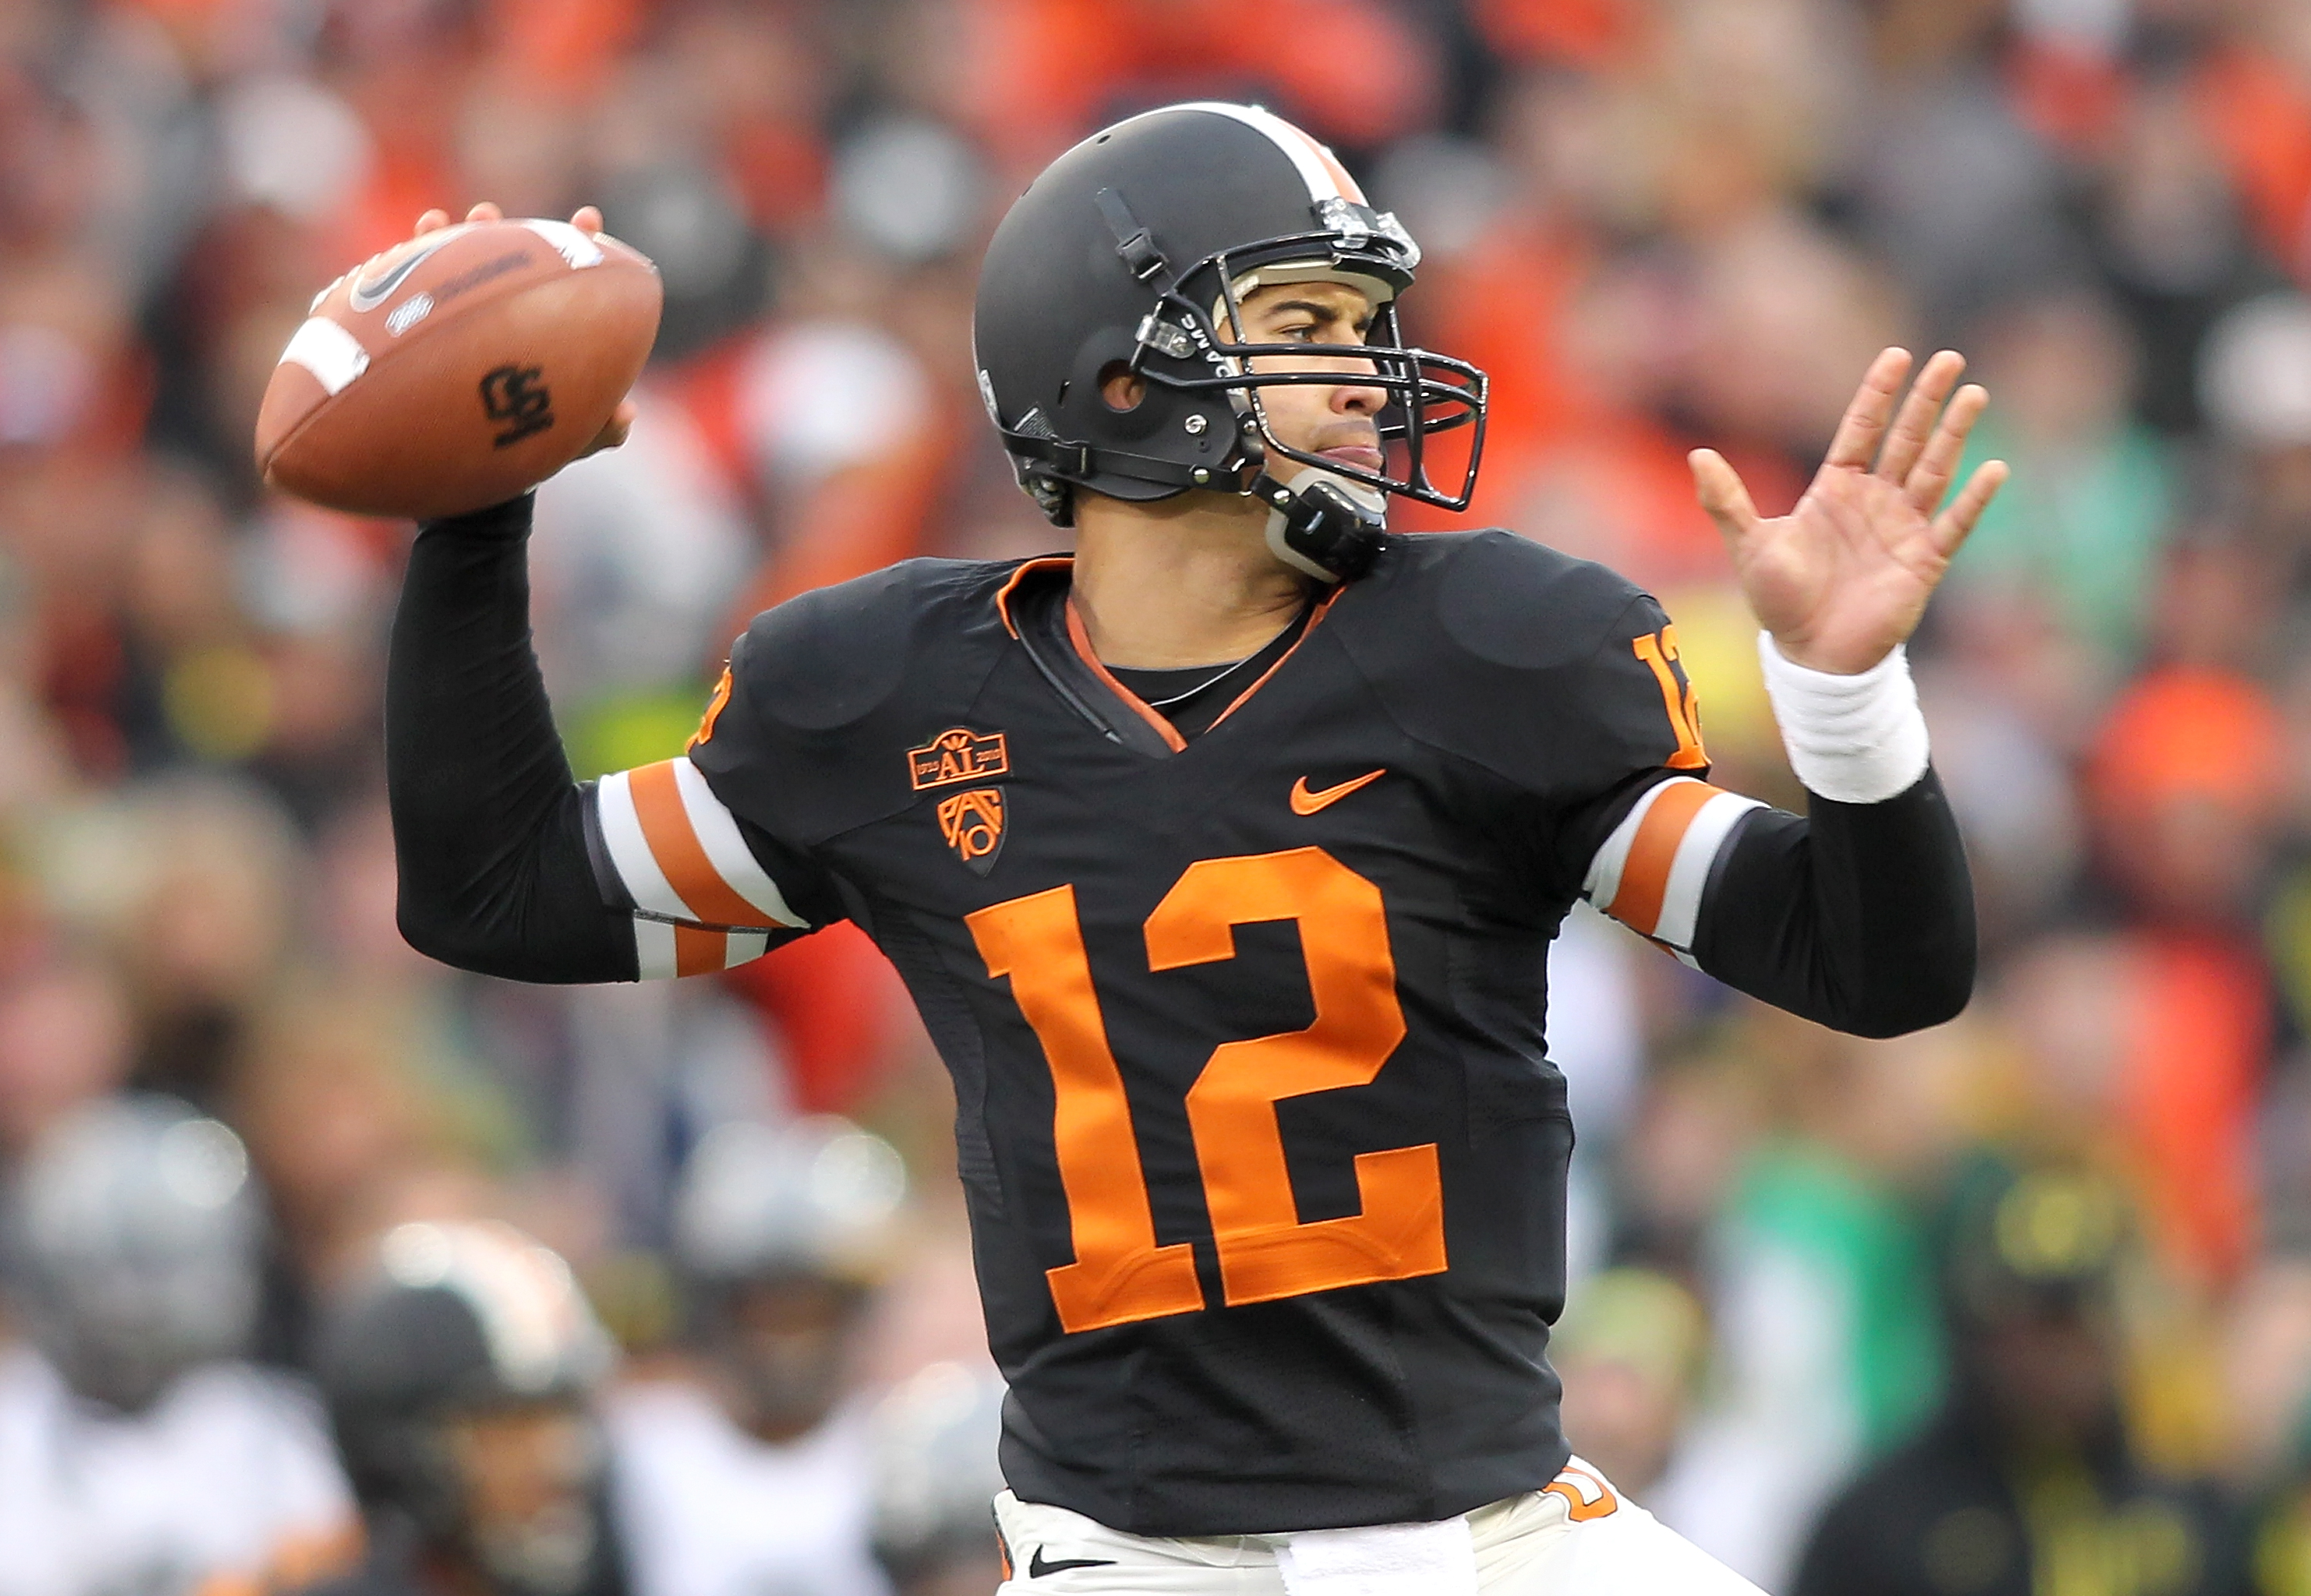 CORVALLIS, OR - DECEMBER 04:  Quarterback Ryan Katz #12 of the Oregon State Beavers throws a pass against the Oregon Ducks during the 114th Civil War on December 4, 2010 at the Reser Stadium in Corvallis, Oregon.  (Photo by Jonathan Ferrey/Getty Images)